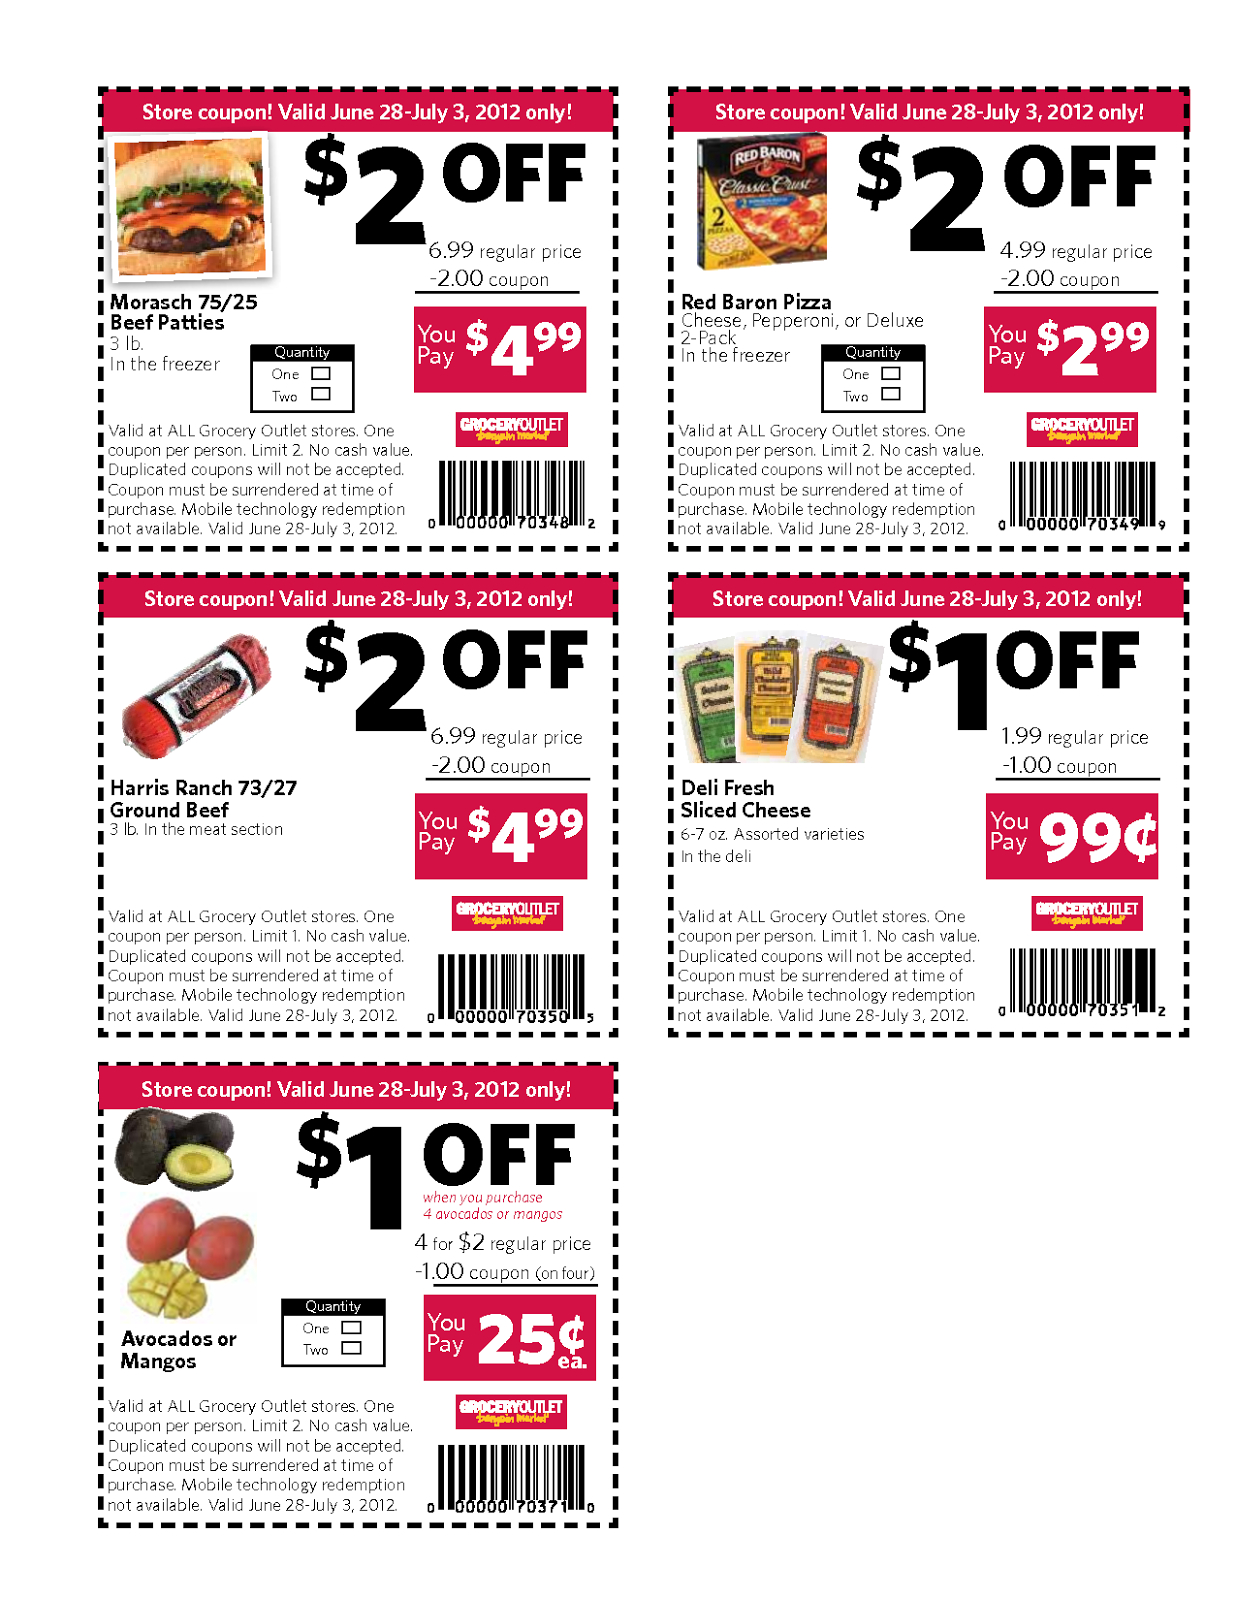 Food Manufacturer Coupons - New Discounts - Manufacturer Coupons Free Printable Groceries